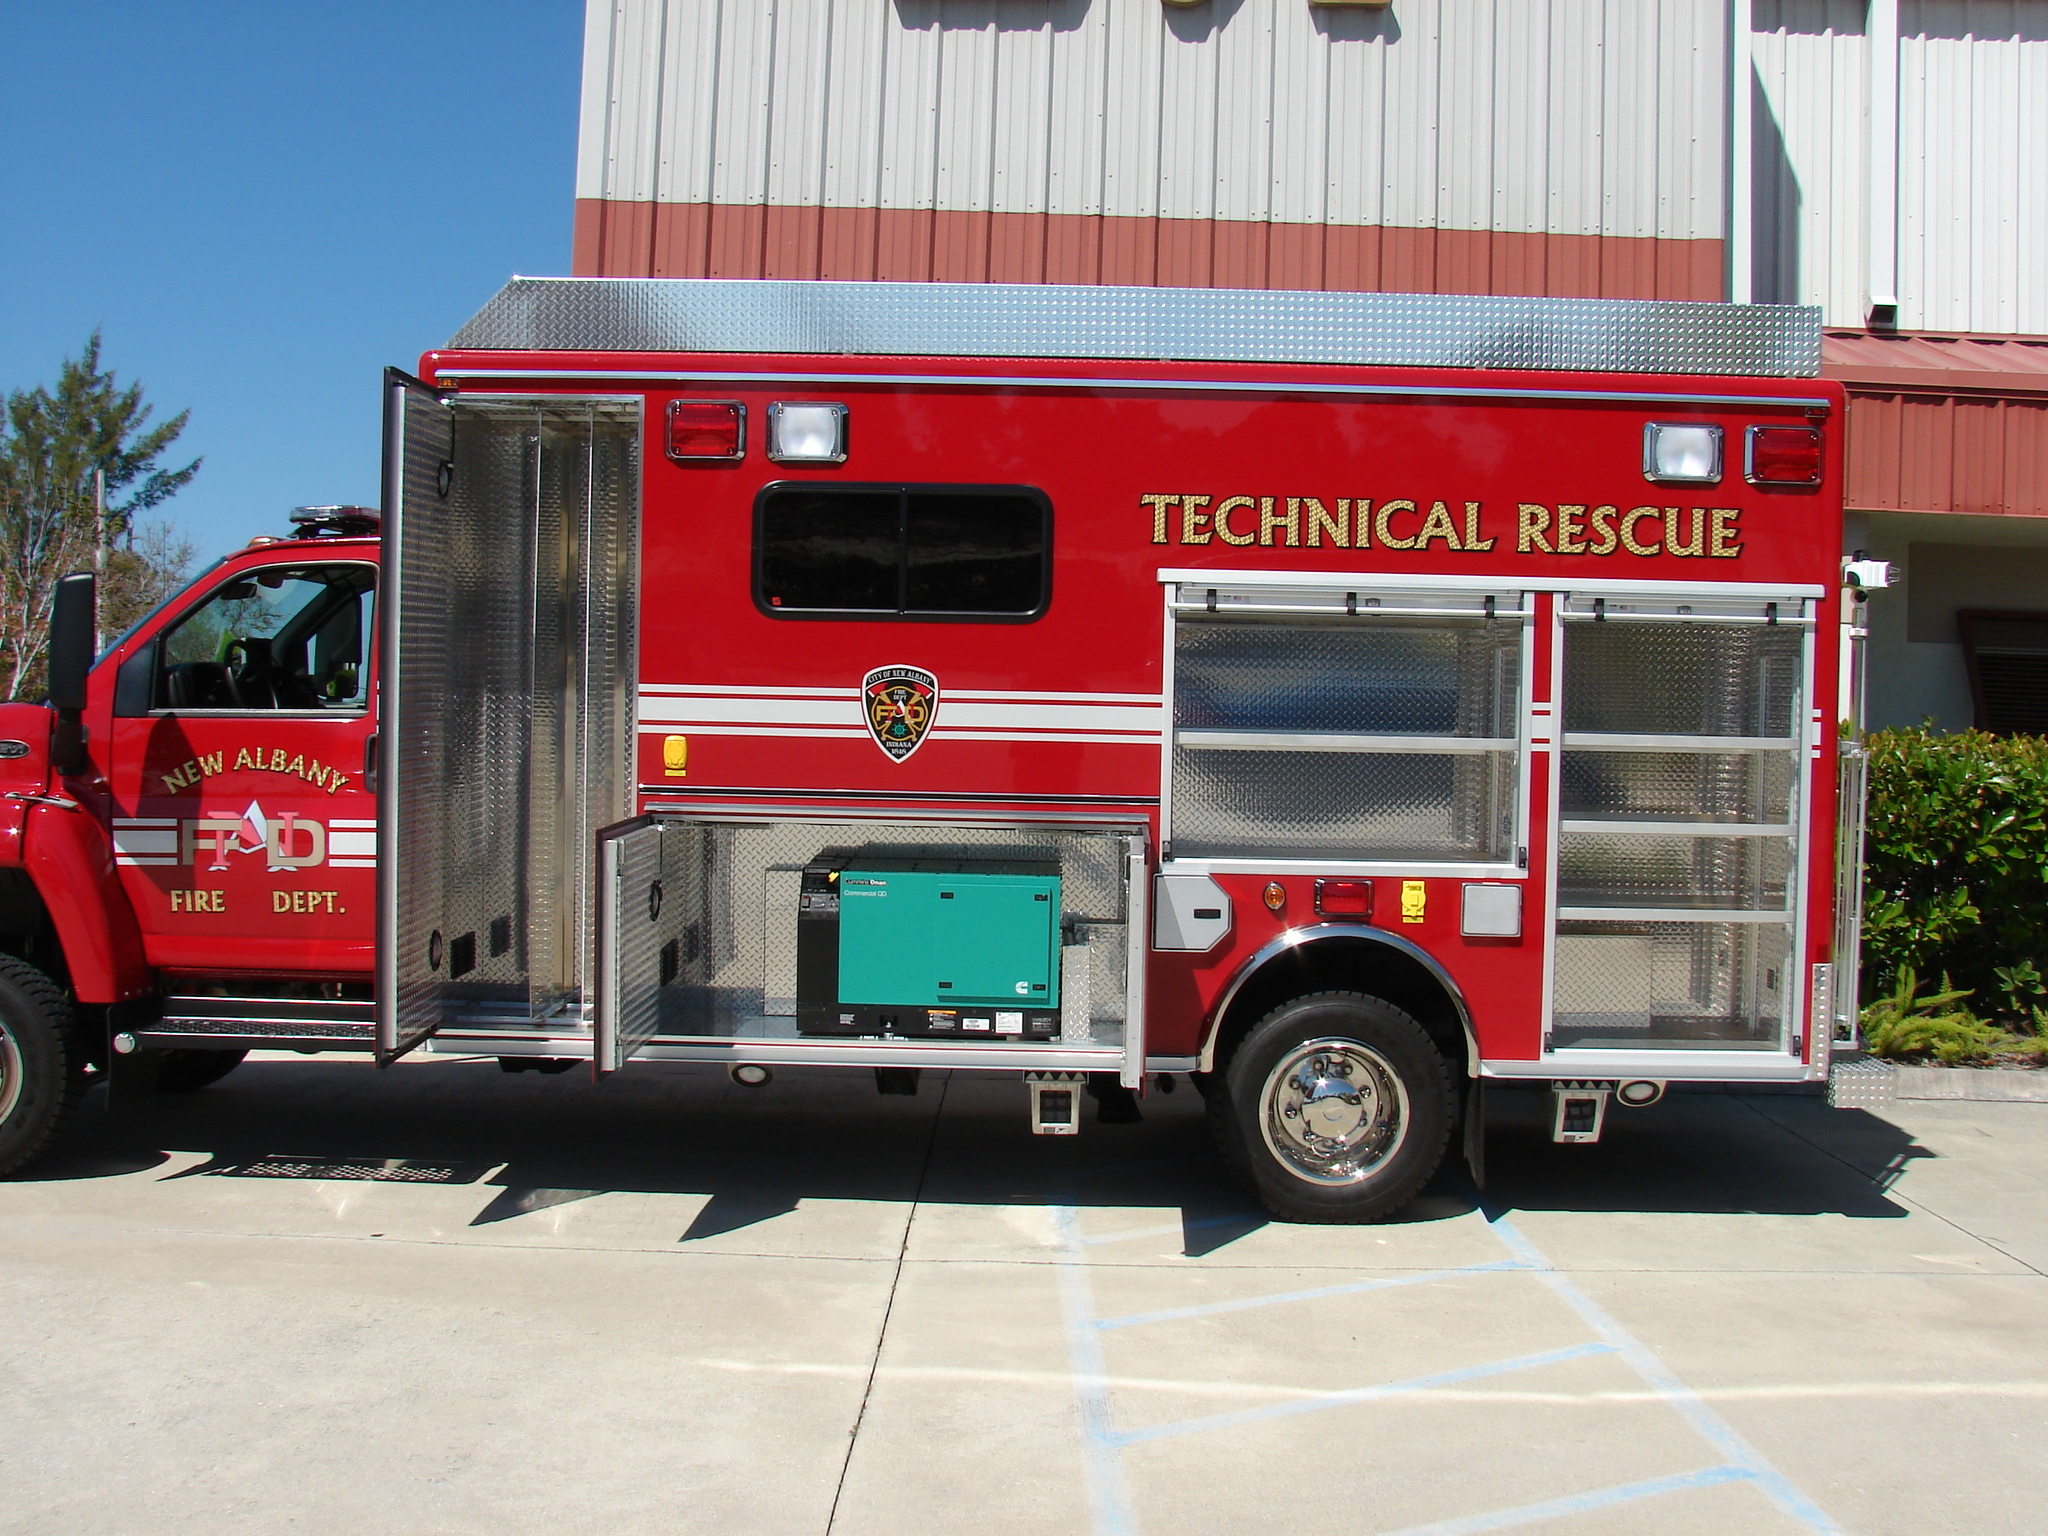 14-Ft. Walk-In Water Rope Rescue